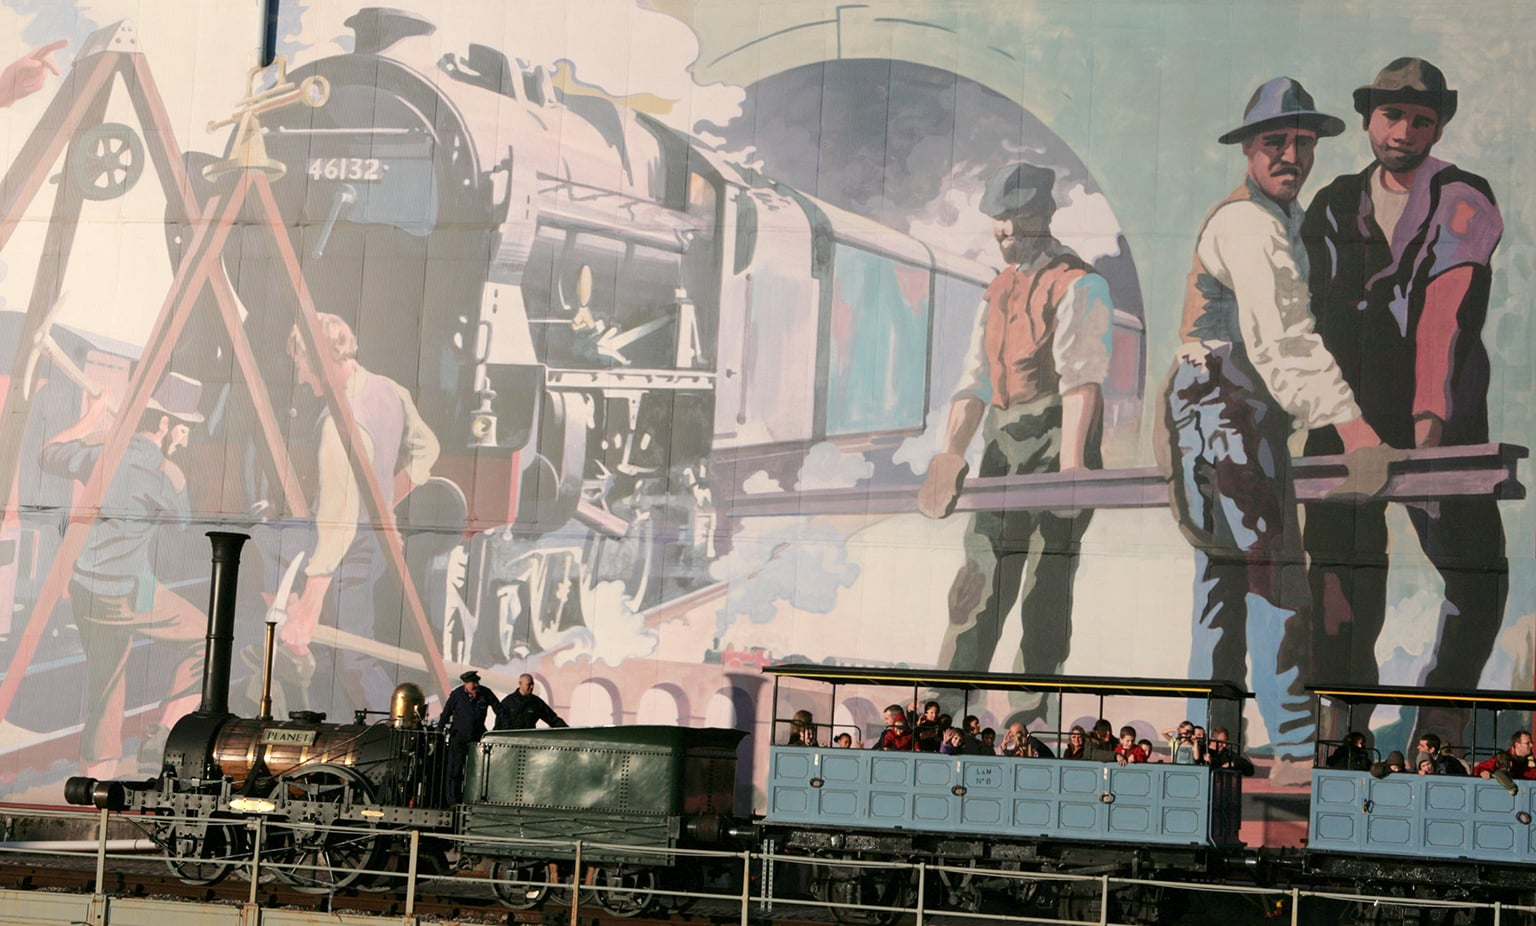 4. MOSI (Museum of Science and Industry), Manchester - Free to all